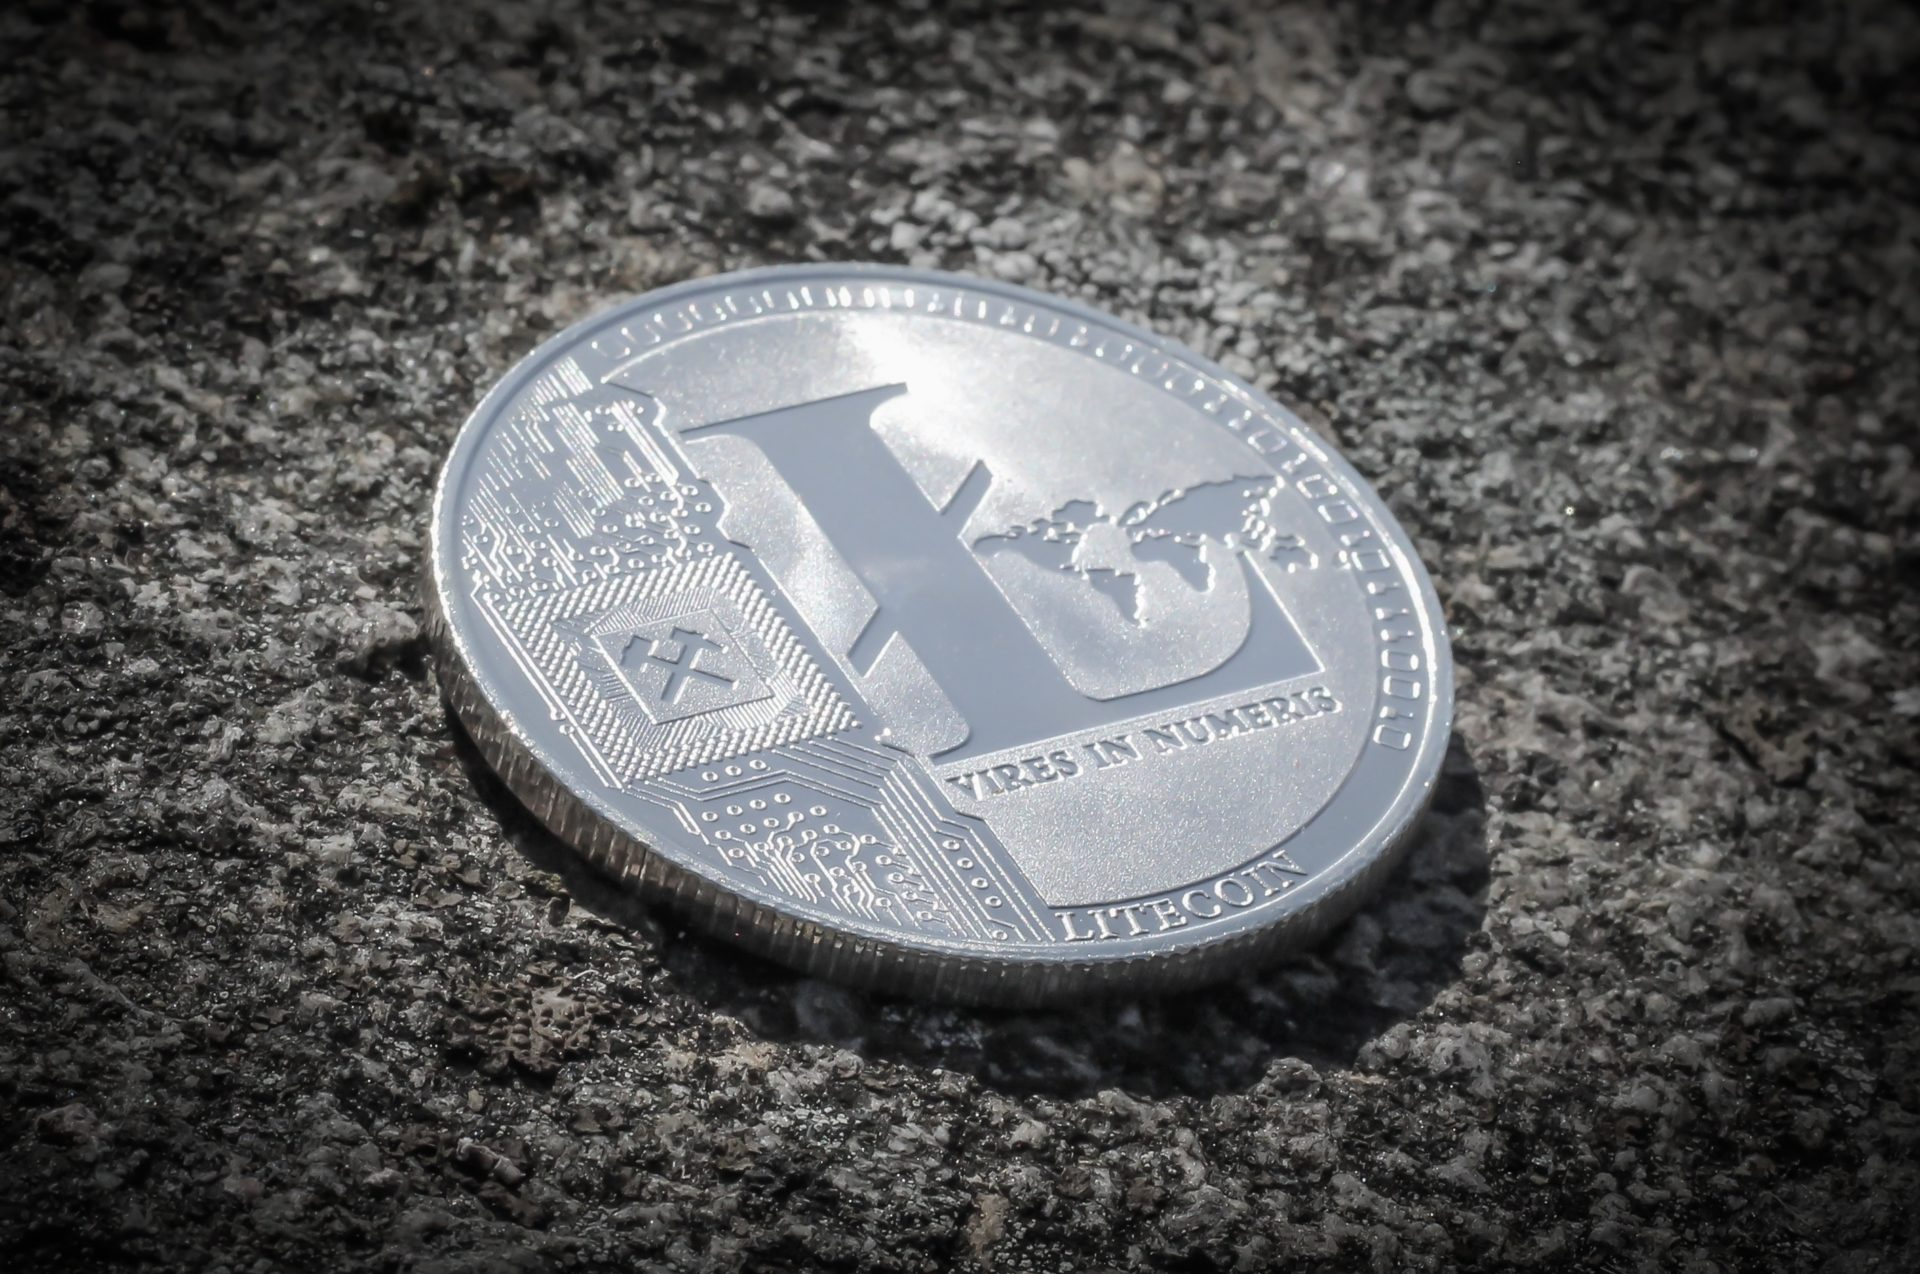 Litecoin (LTC) Transaction Fees To Be Drastically Slashed, Dev Calls For Adoption 13